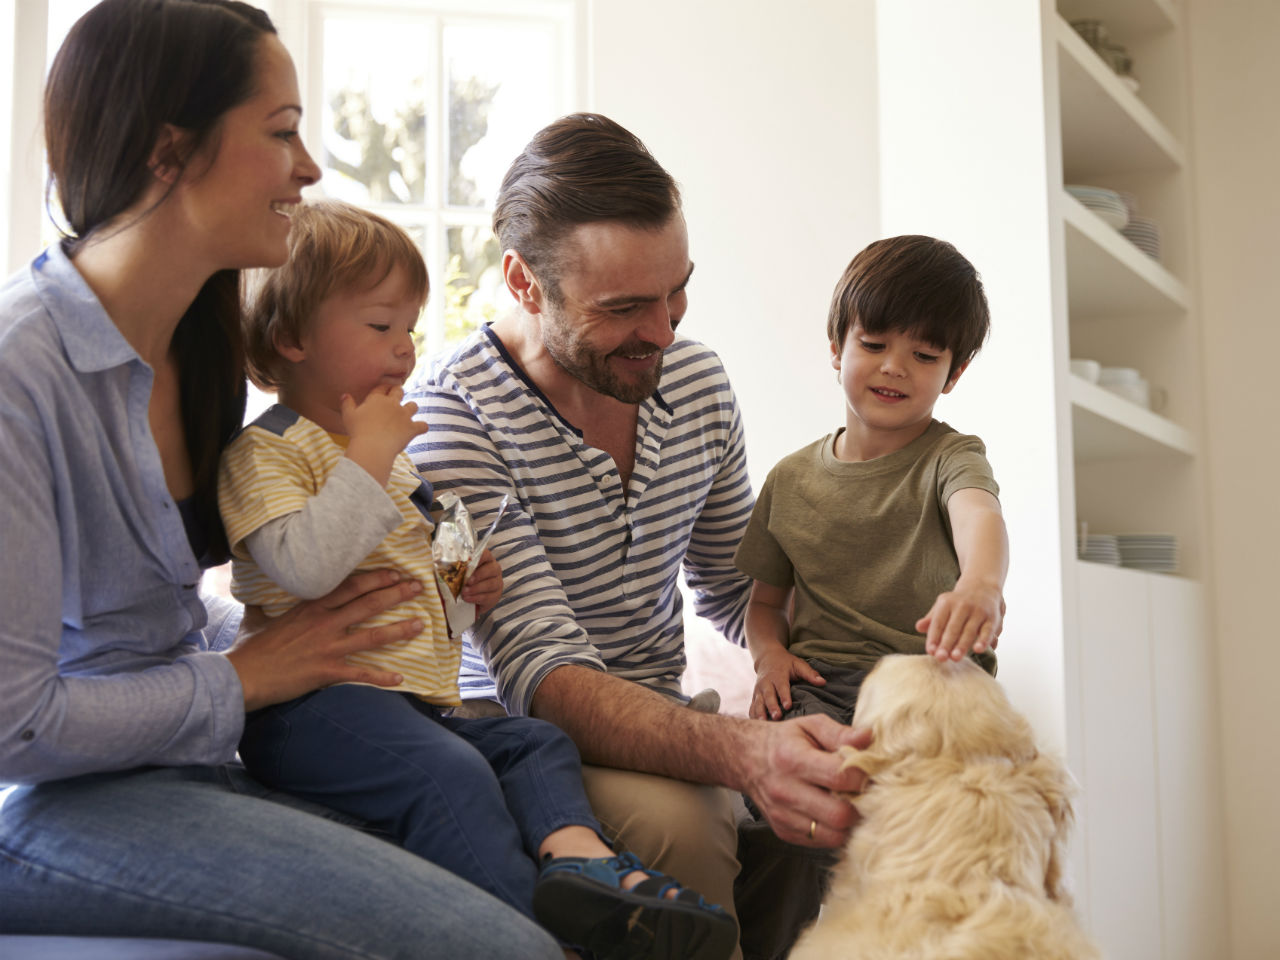 5 Best Pets For Kids And 3 To Avoid